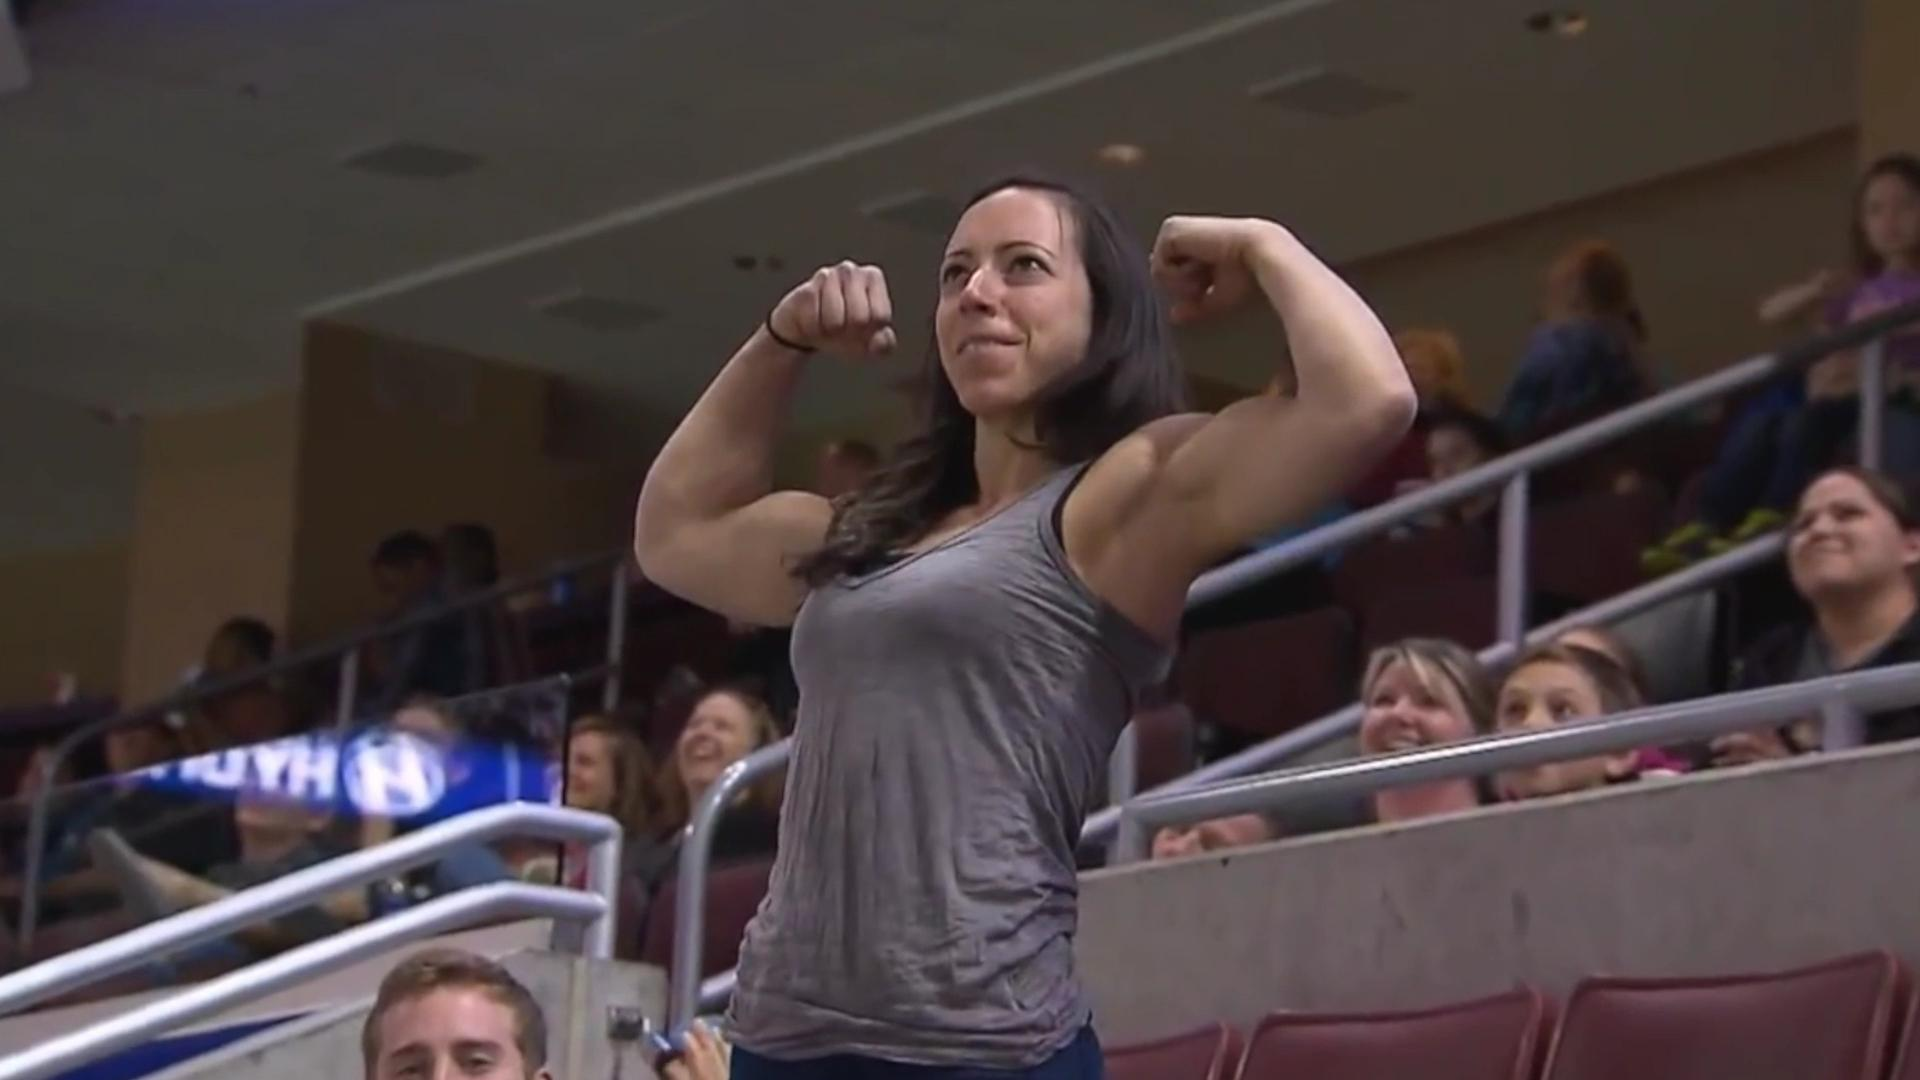 muscle women cam